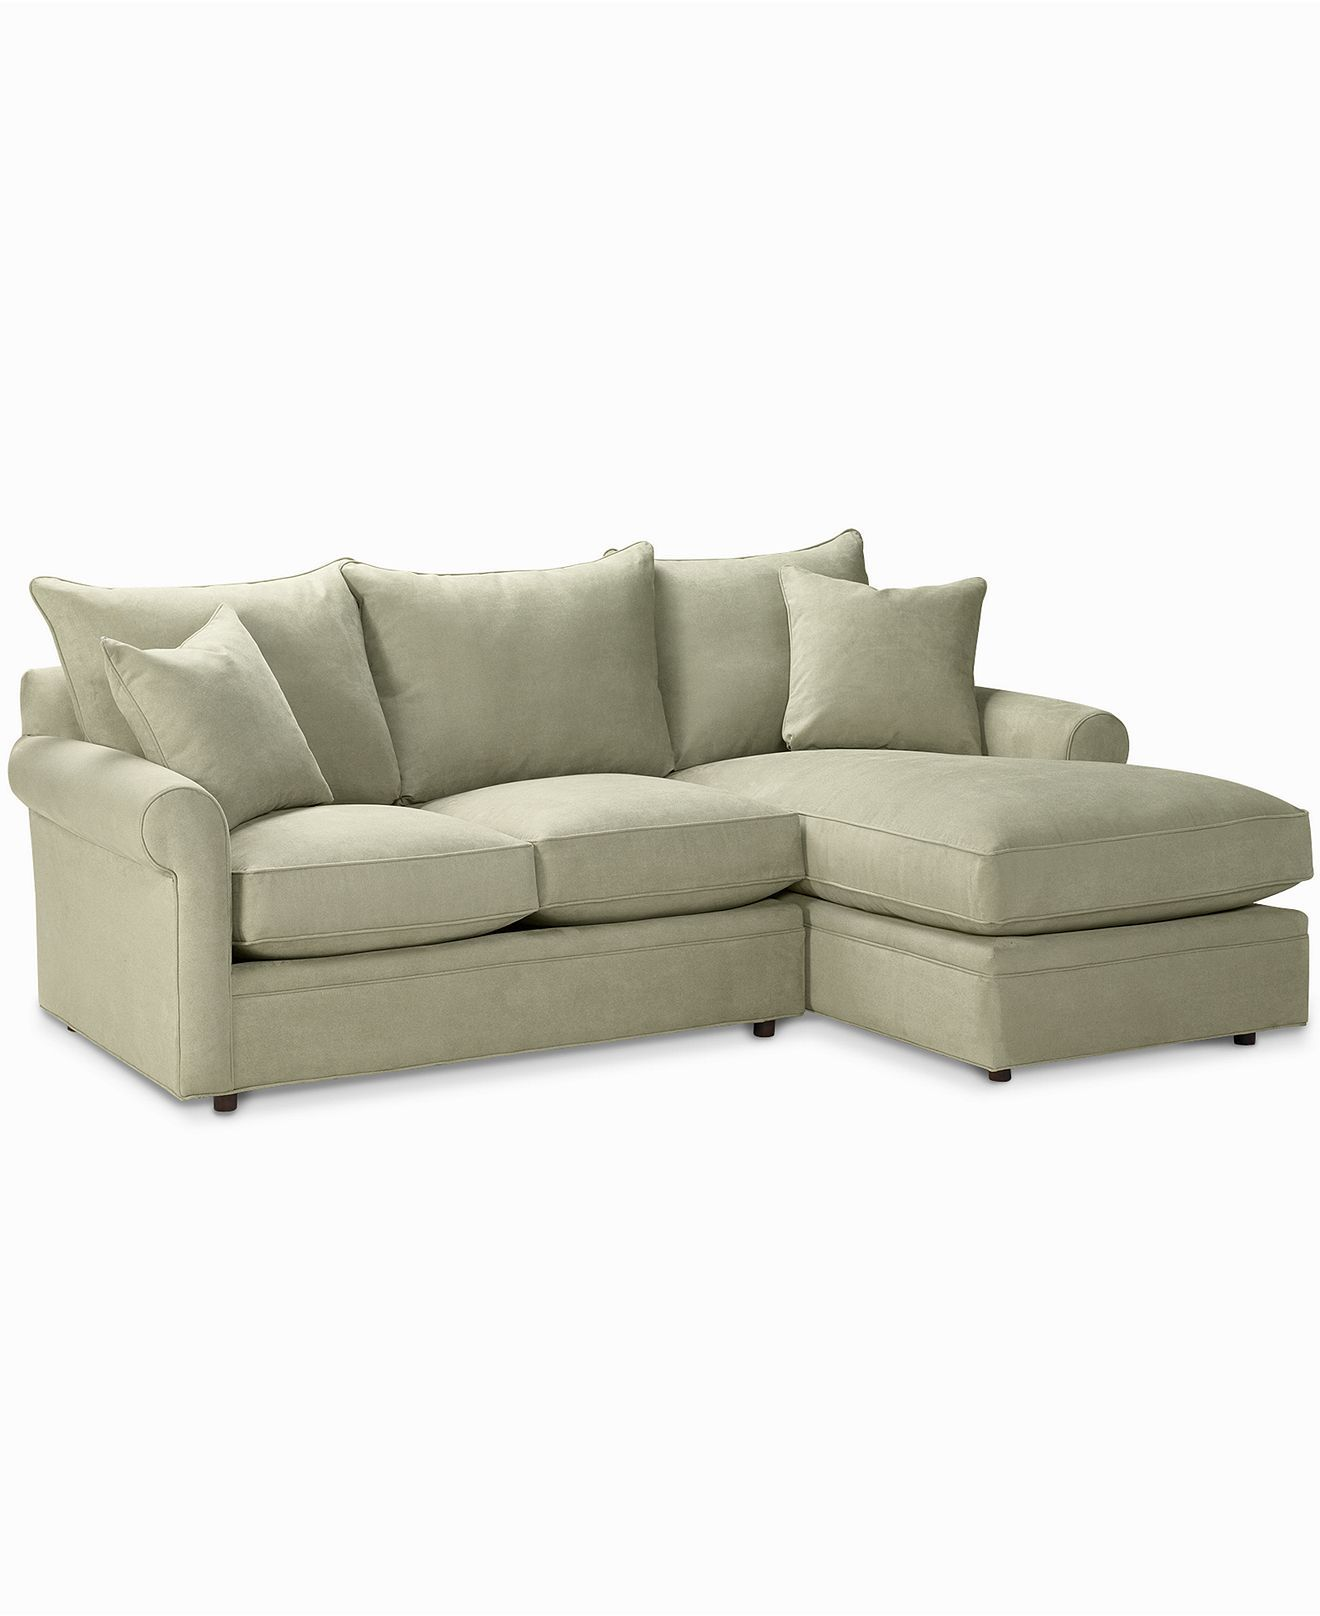 Doss Fabric Microfiber Sectional Sofa 2 Piece Loveseat